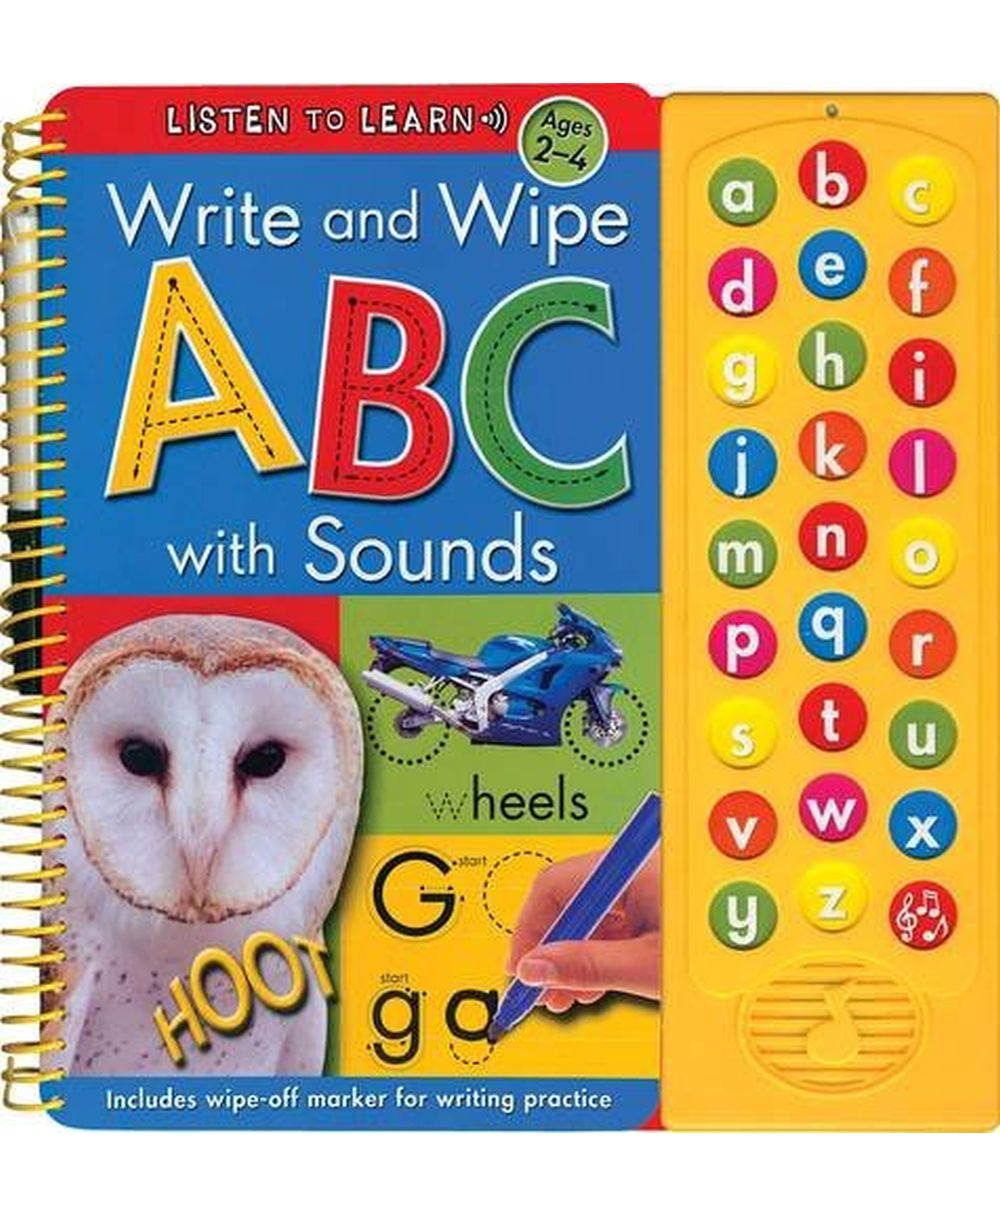 Listen and Learn, Write and Wipe – ABC with Sounds